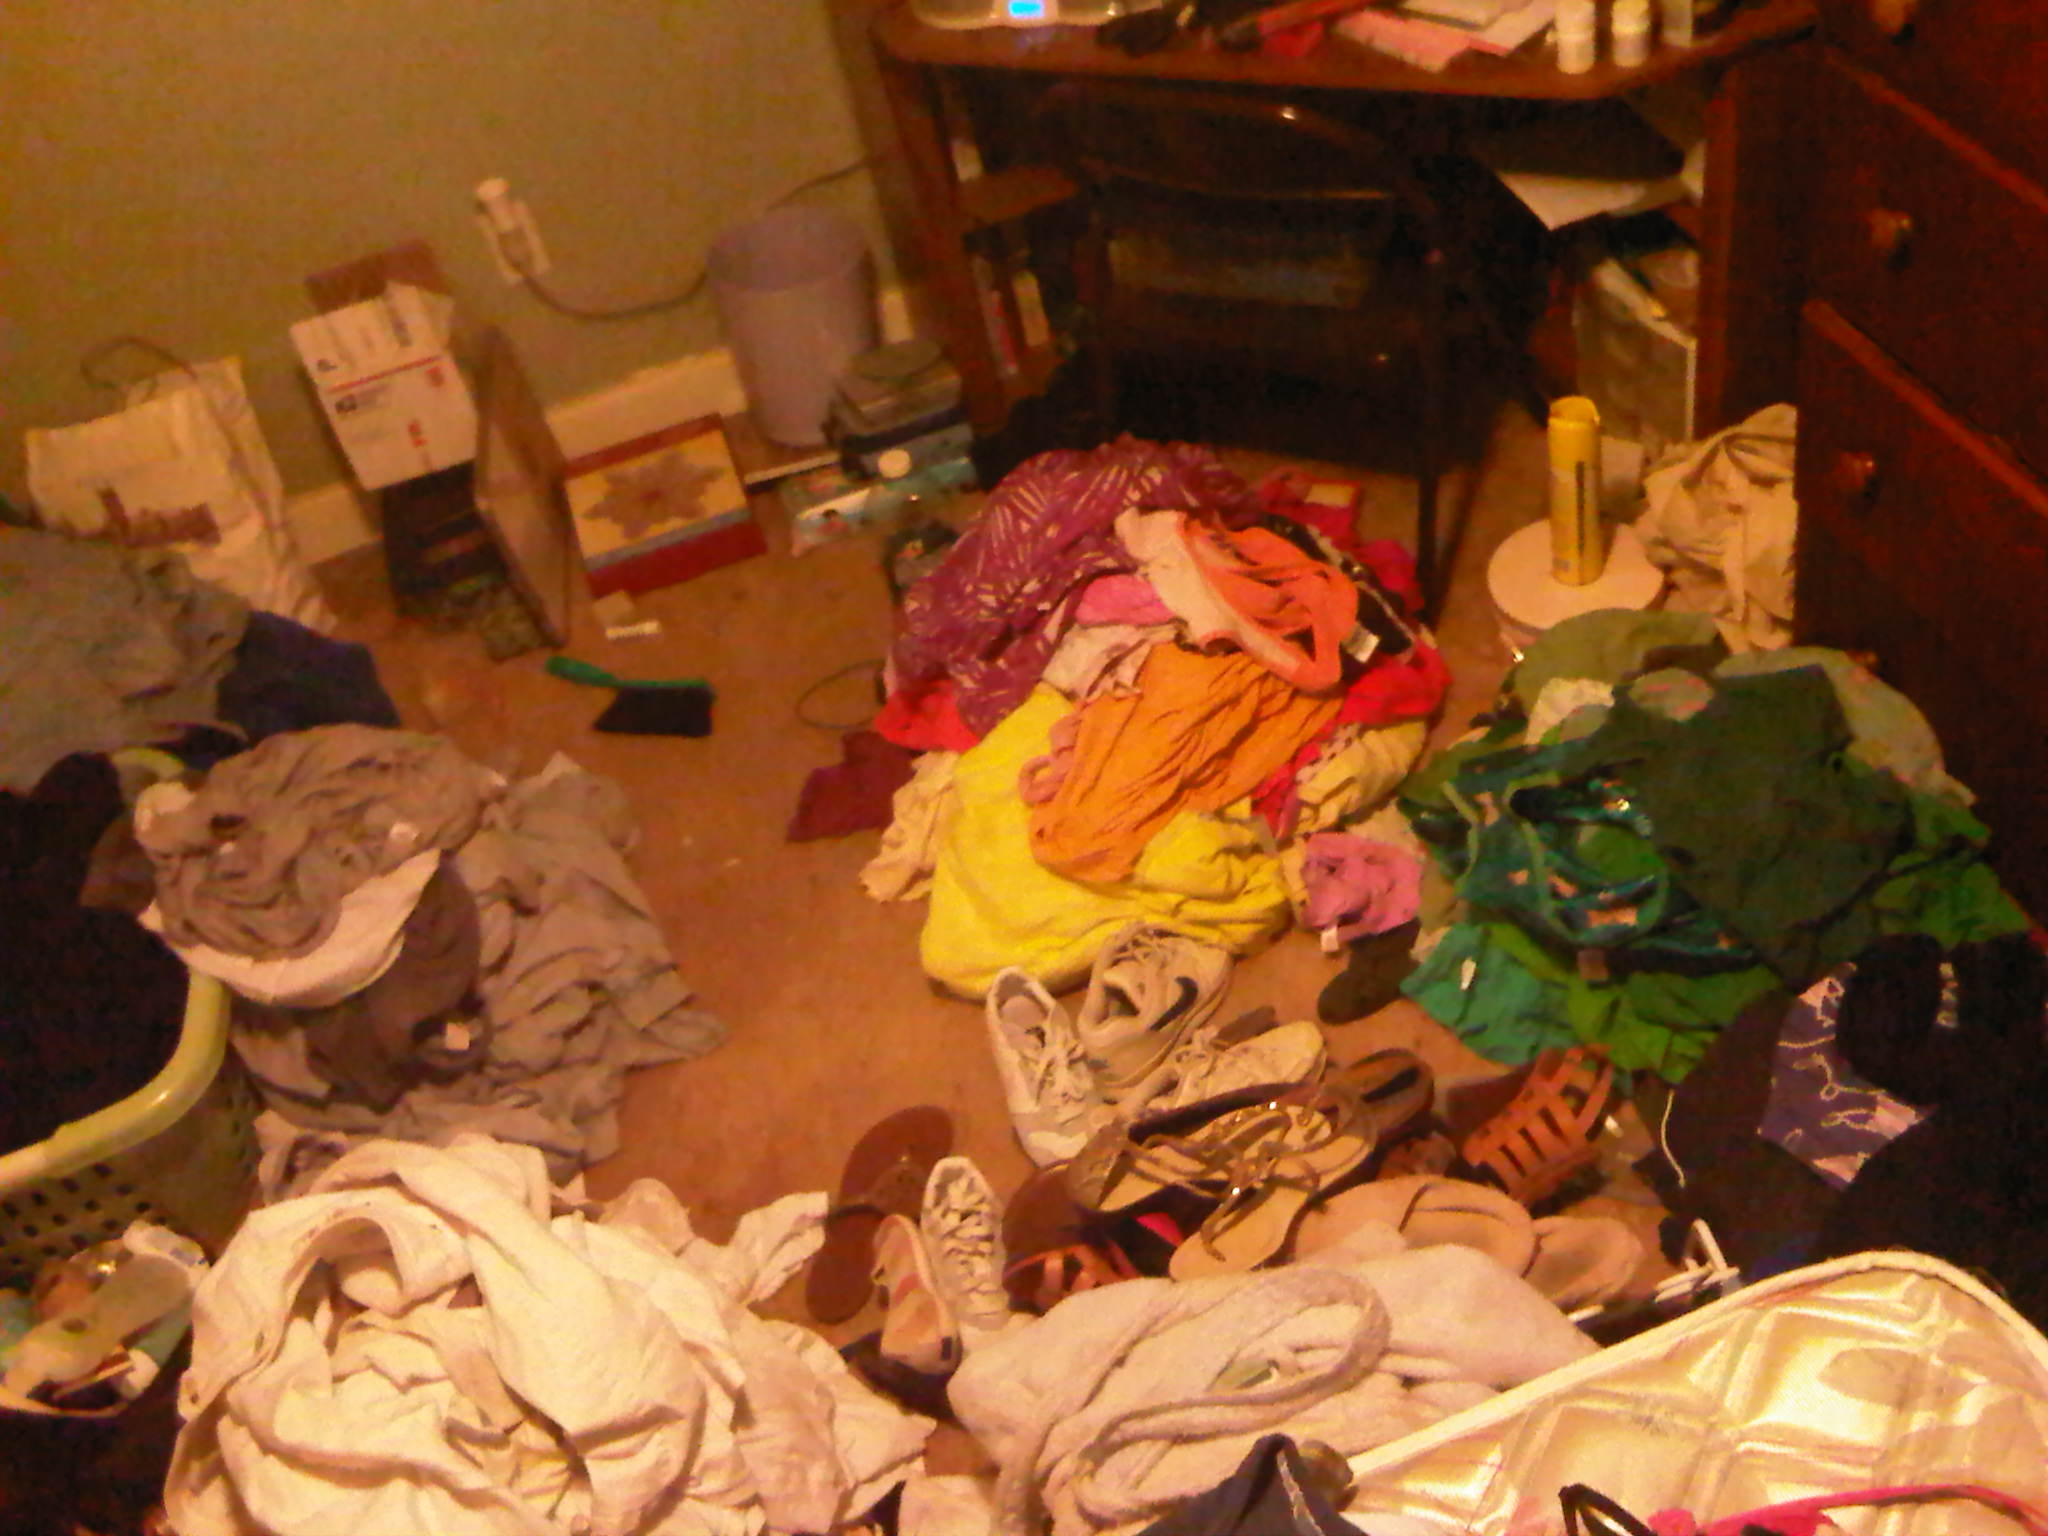 Clothes on the floor